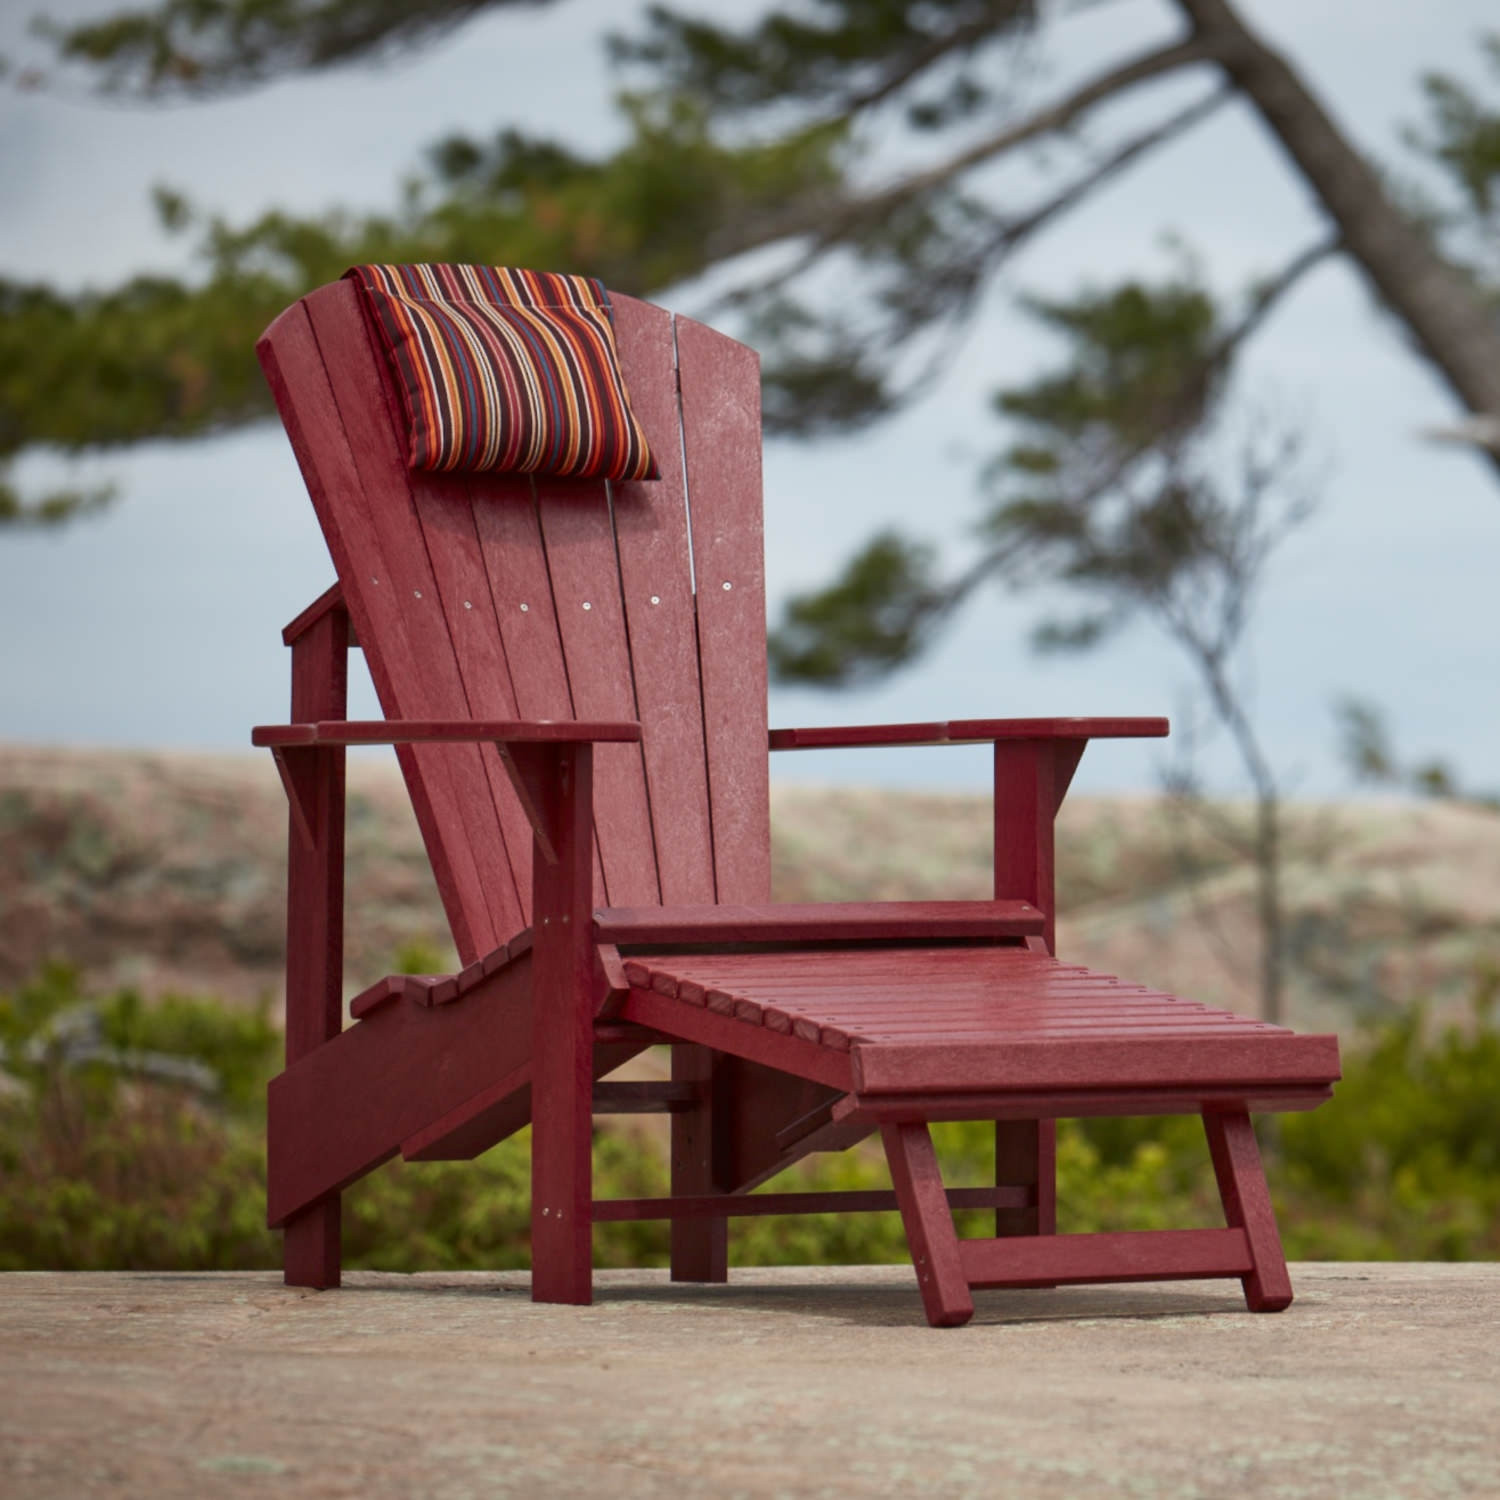 Genial CR Plastics Generations Upright Adirondack Chair   Poly Adirondack Chairs    Adirondacks